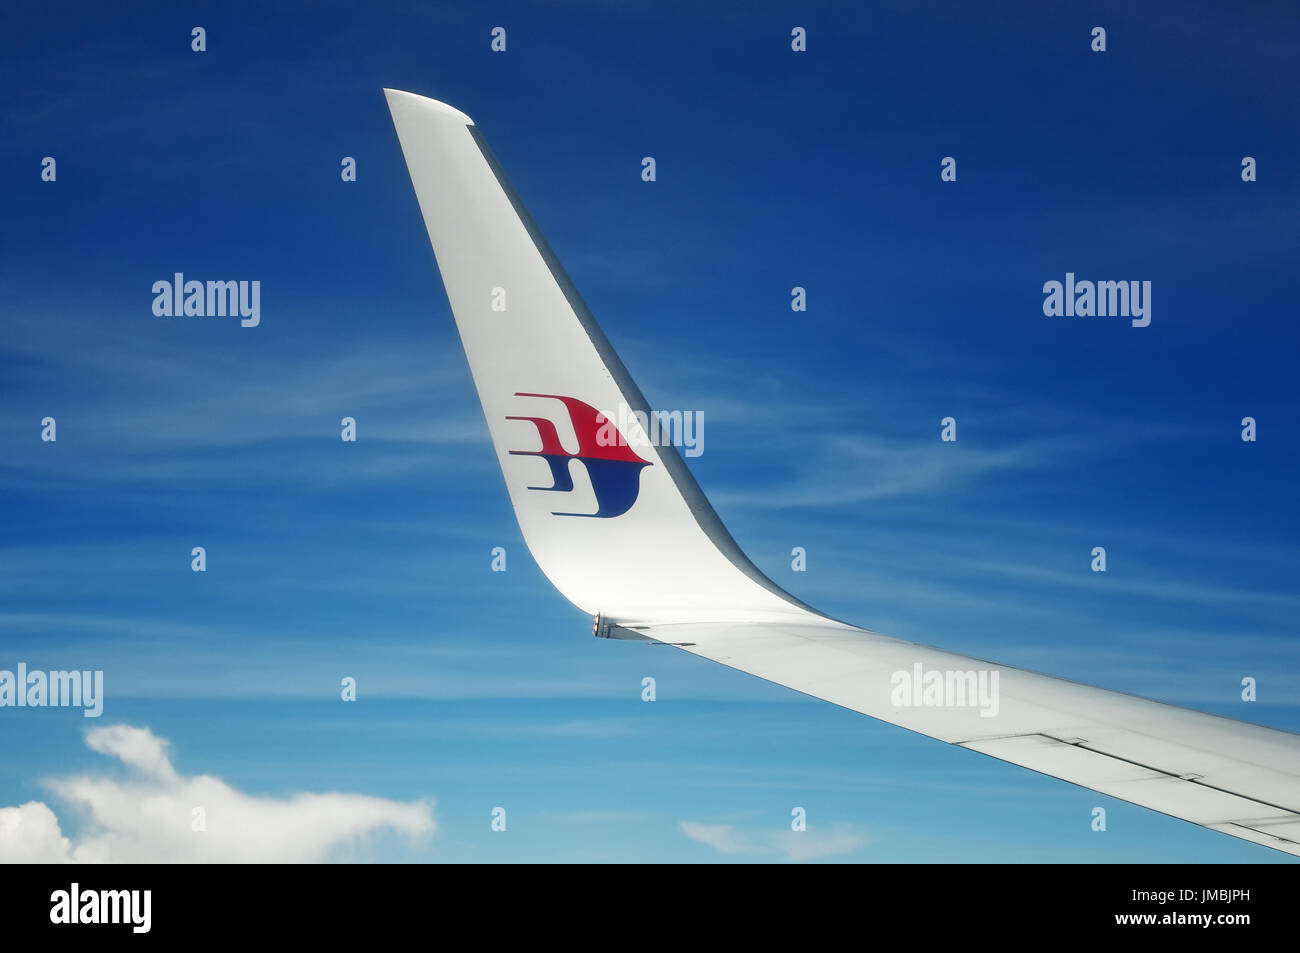 KUALA LUMPUR, MALAYSIA - MAY 09, 2015: Malaysia Airlines airplane wing with MAS logo on the sky. Malaysia Airlines behad is the flag carrier of Malays - Stock Image